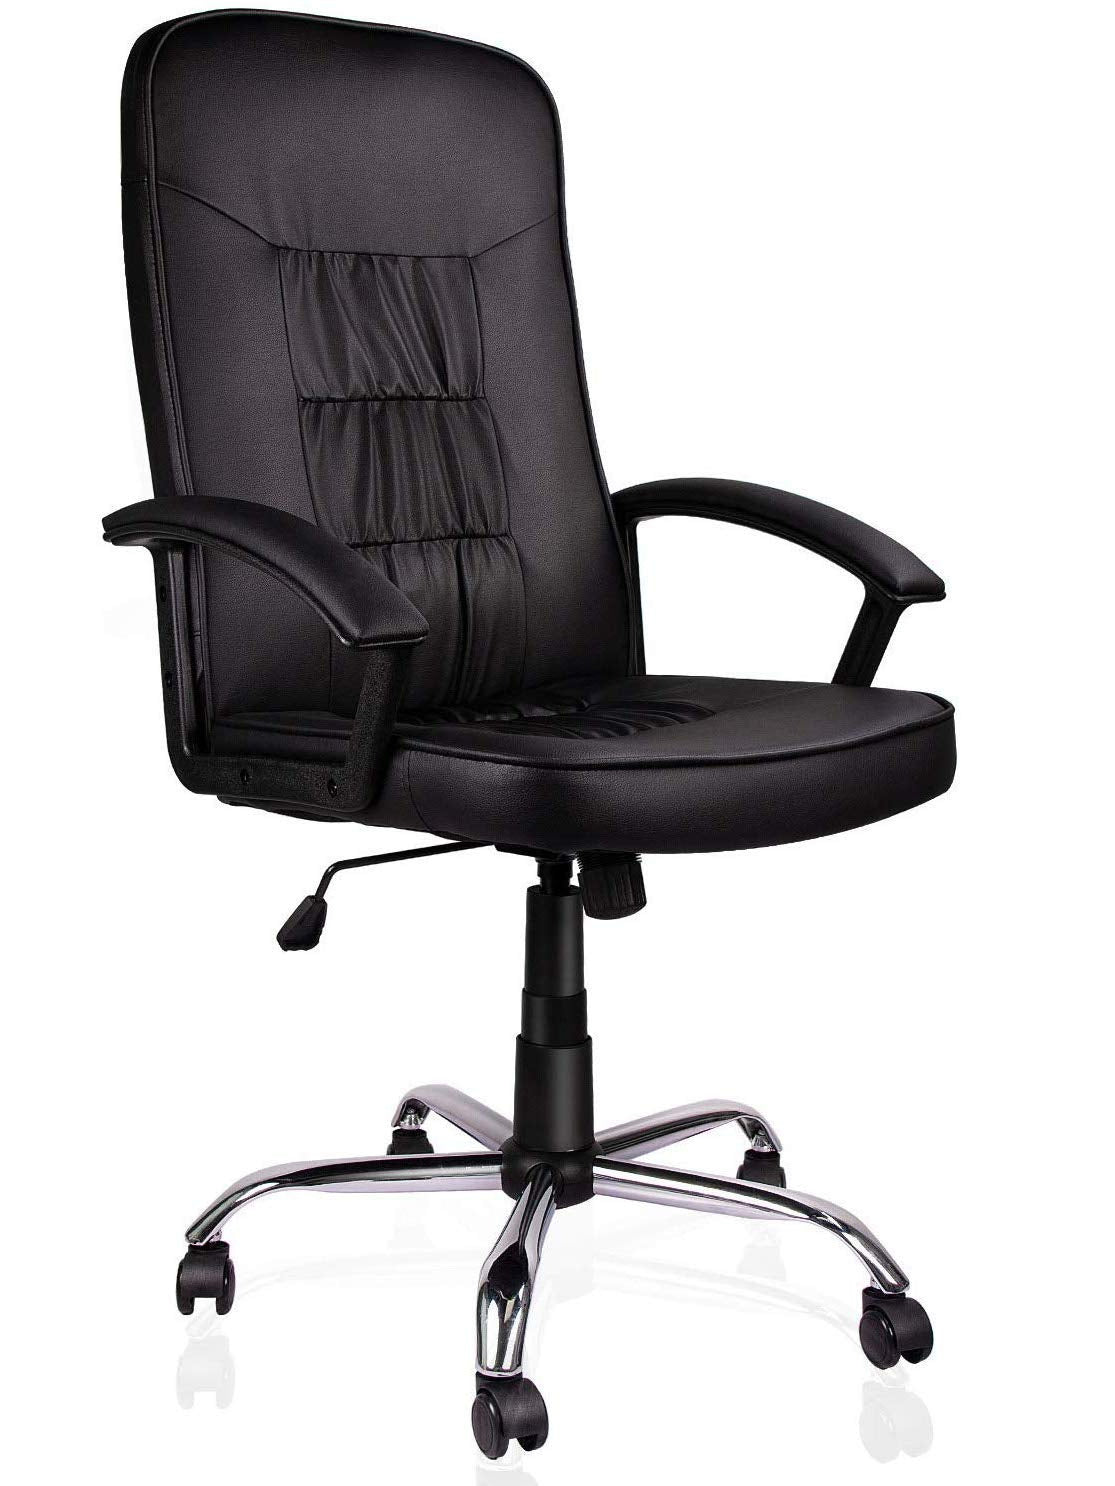 Ergonomic Office Chair Executive Bonded Leather Computer Chair, Black